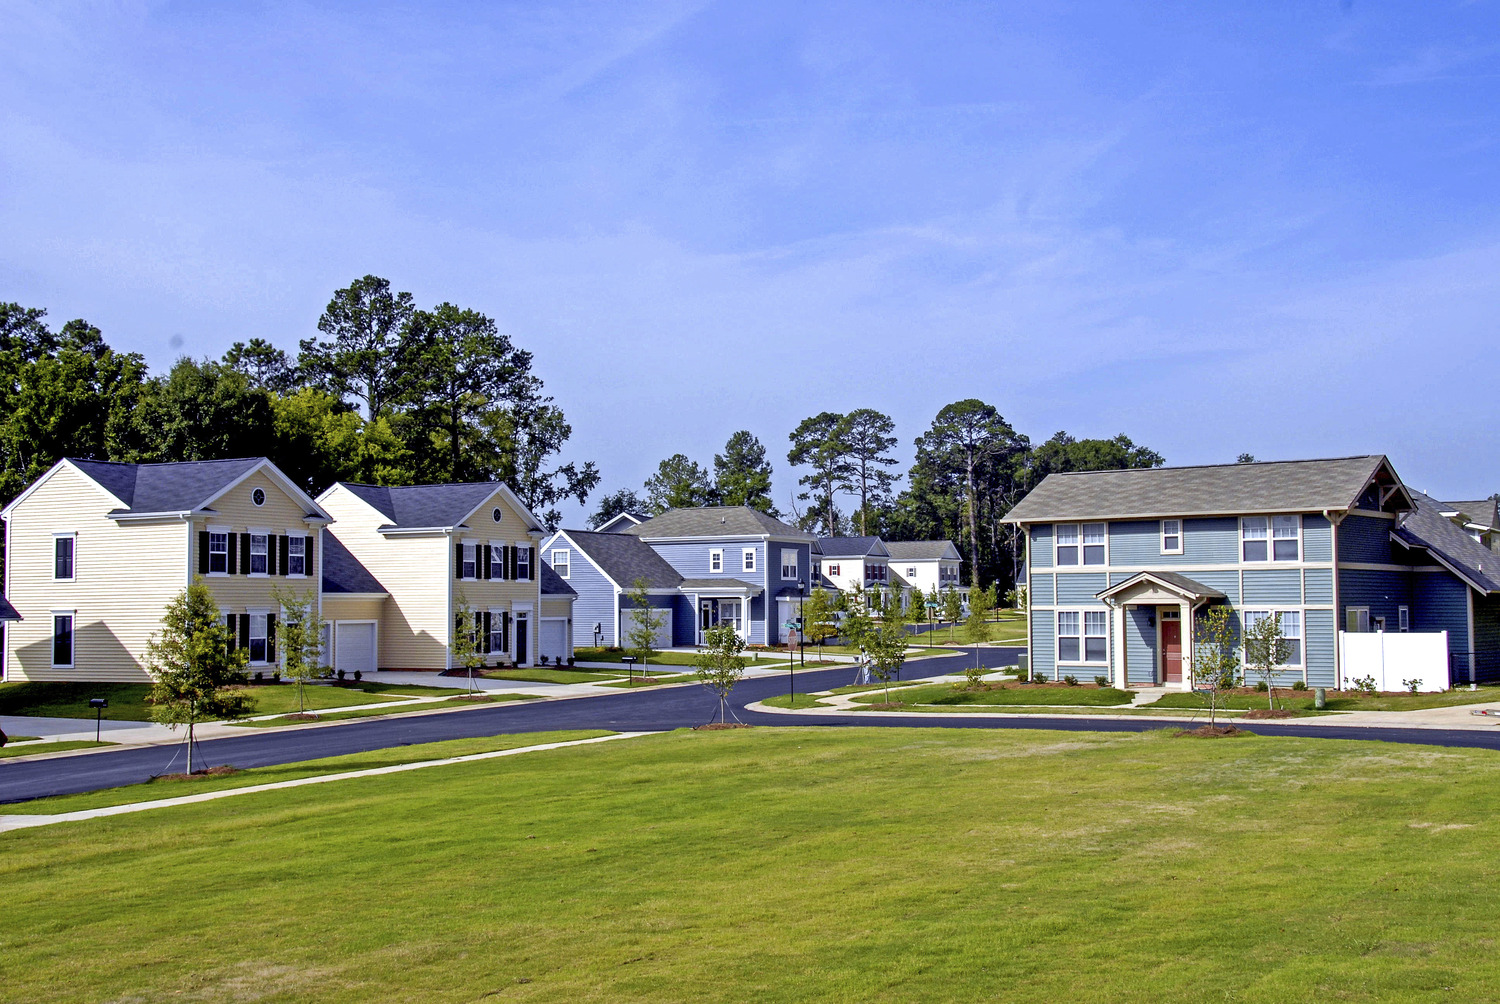 CBG builds Fort Benning Family Housing, a 3,667 Units of Housing for the Army in Fort Benning, GA